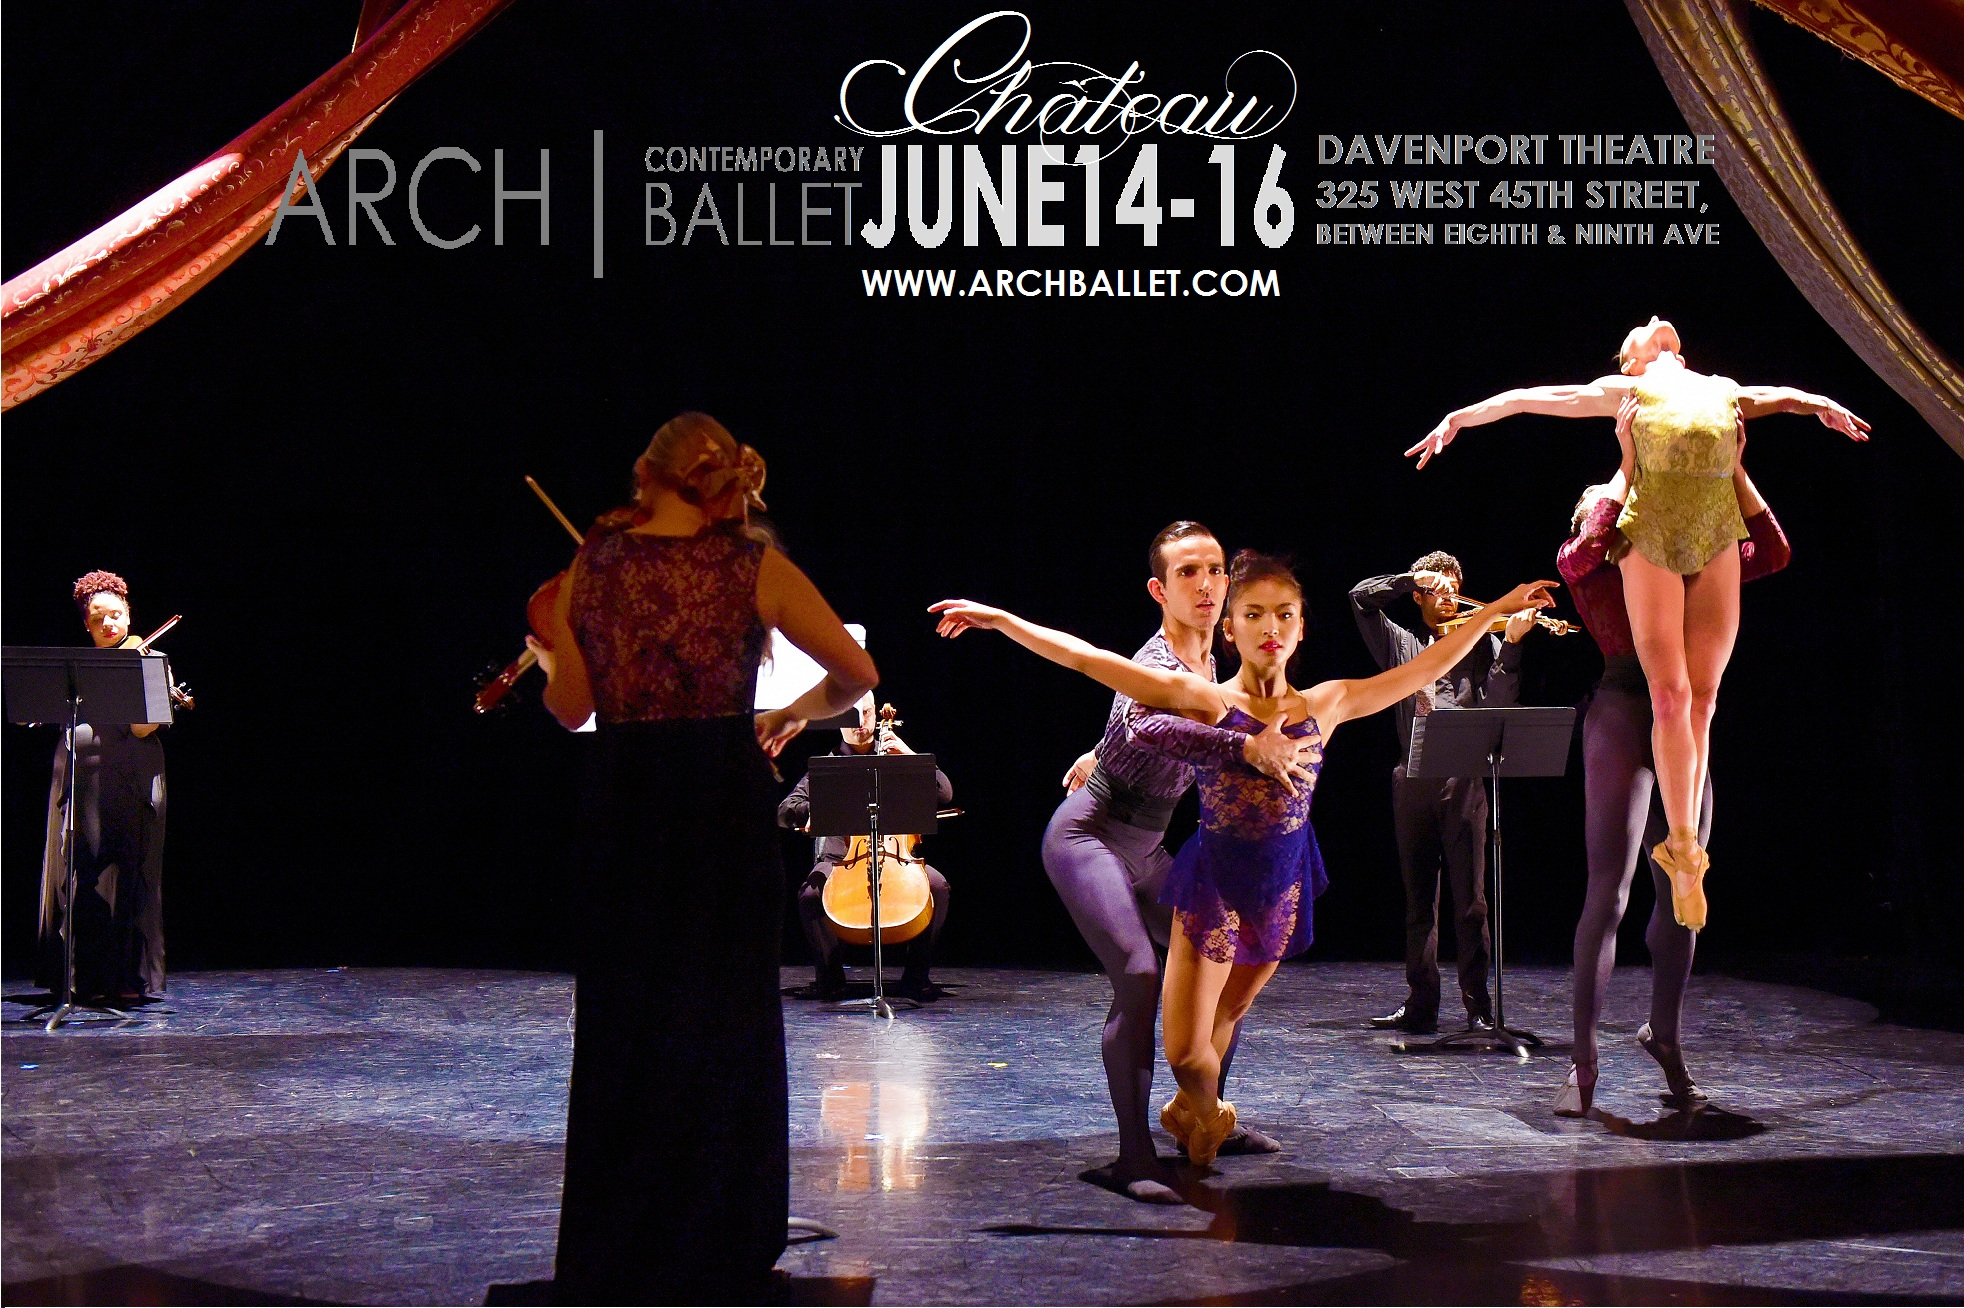 Arch Contemporary Ballet Chateau Sheena Annalise Poster 2